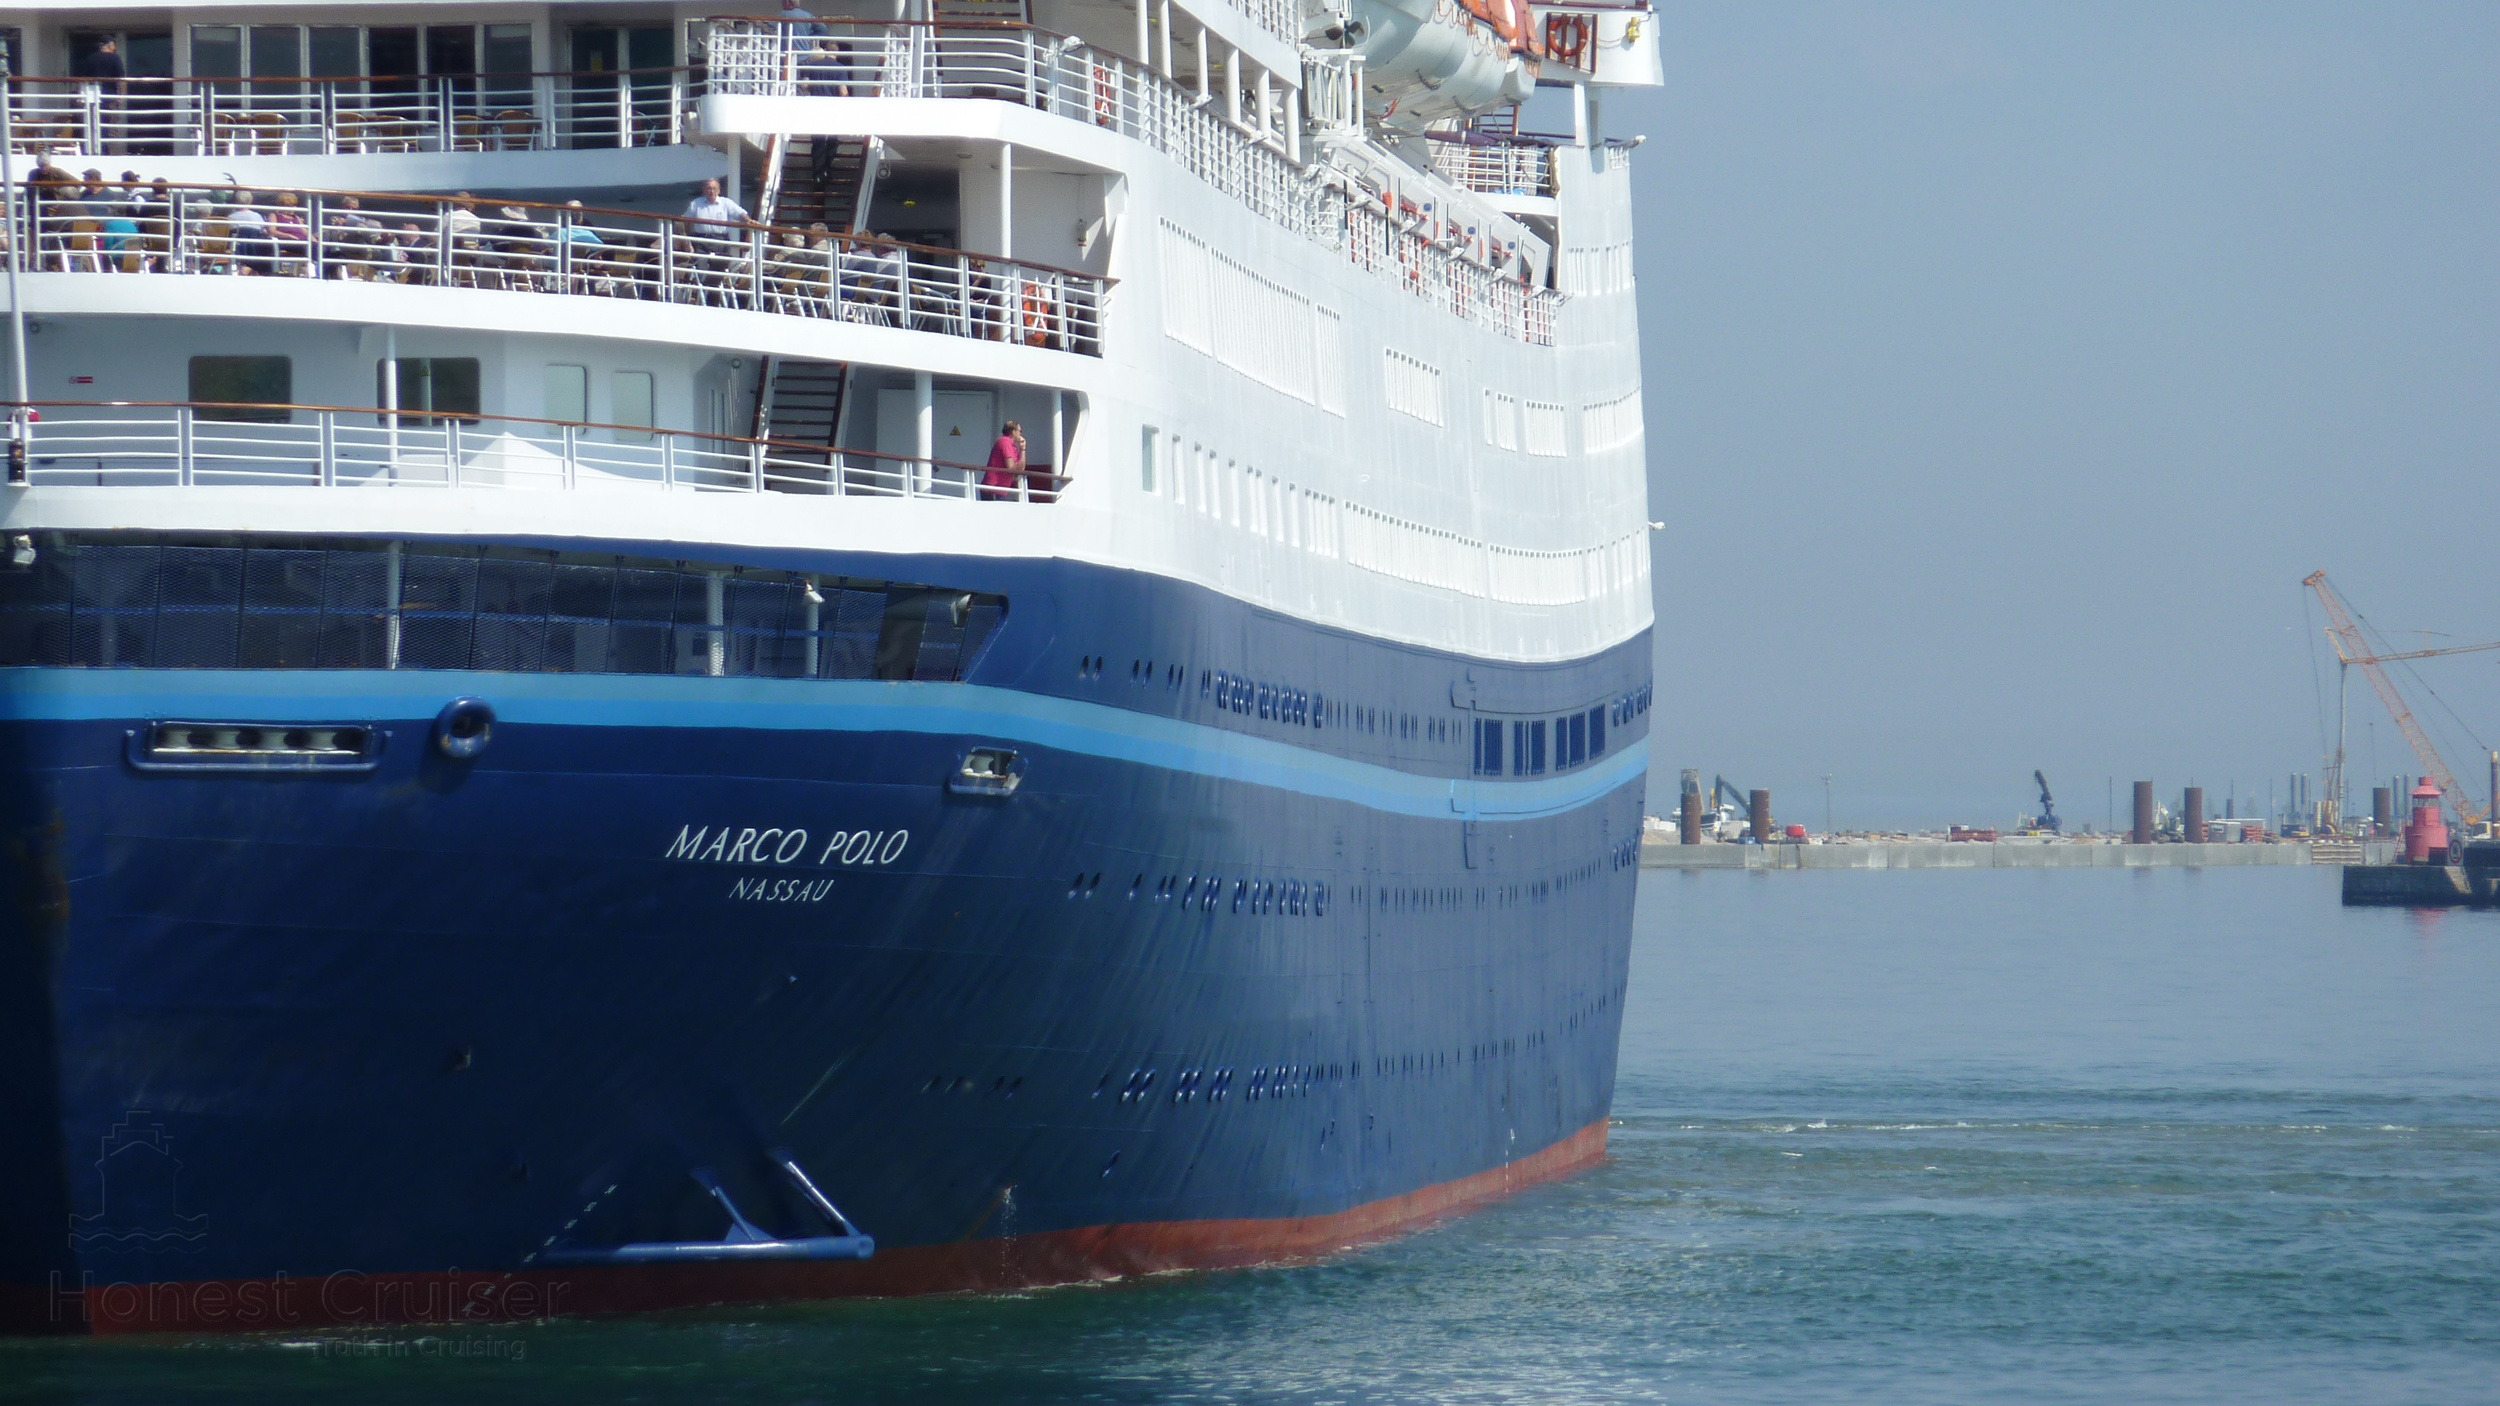 Note the upward curving or sheer of Marco Polo's decks